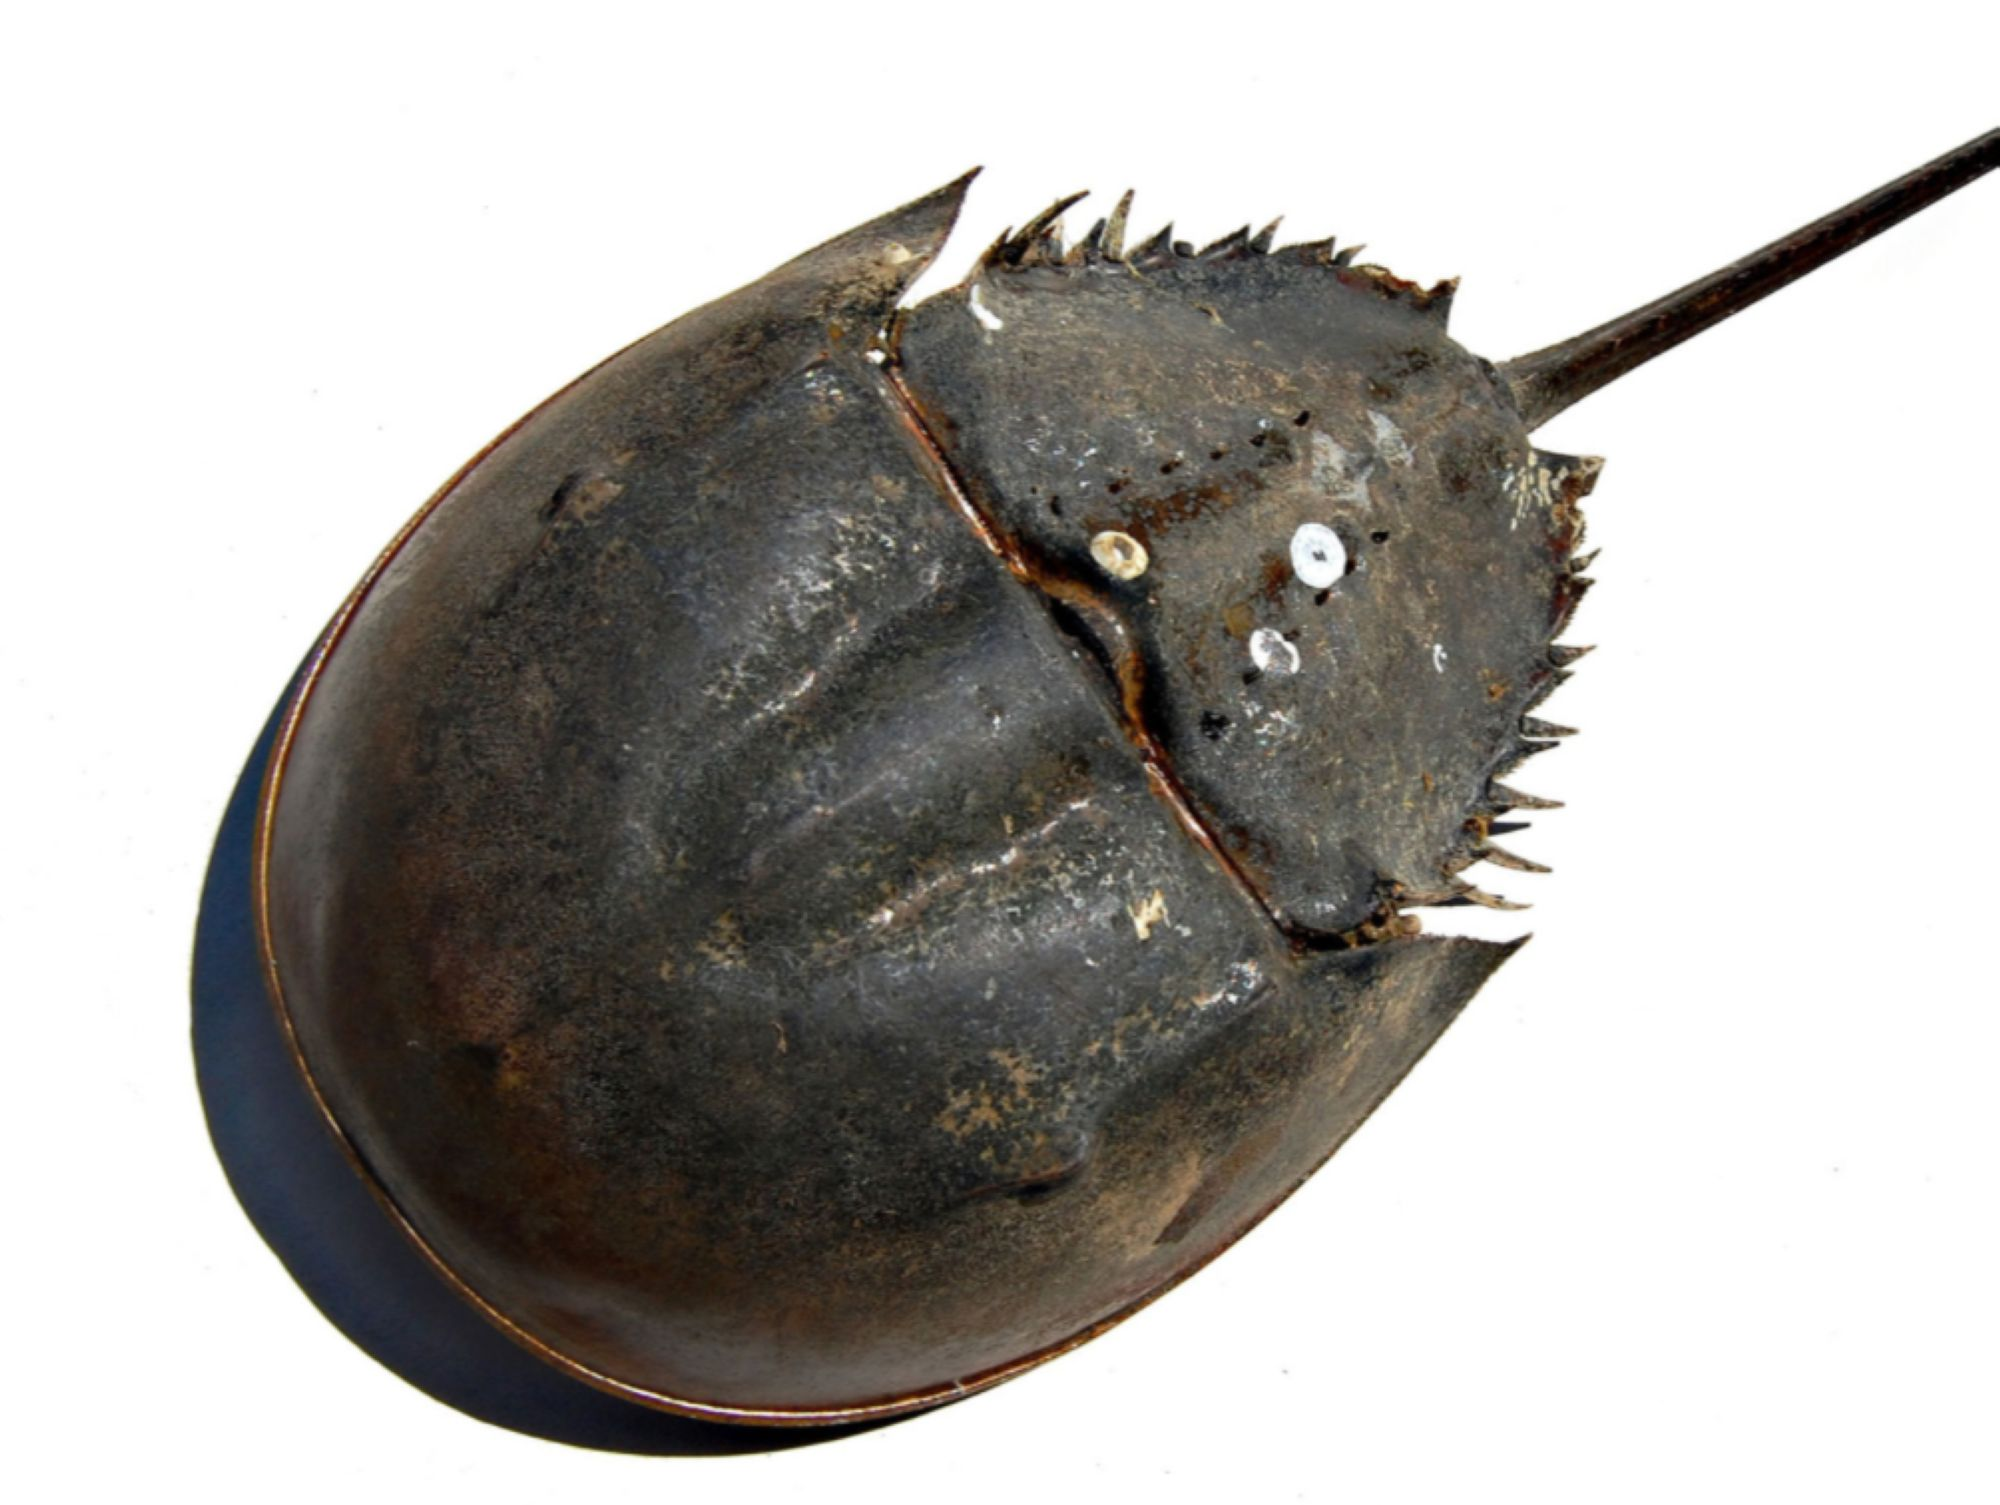 09-Horseshoe-crab.jpg